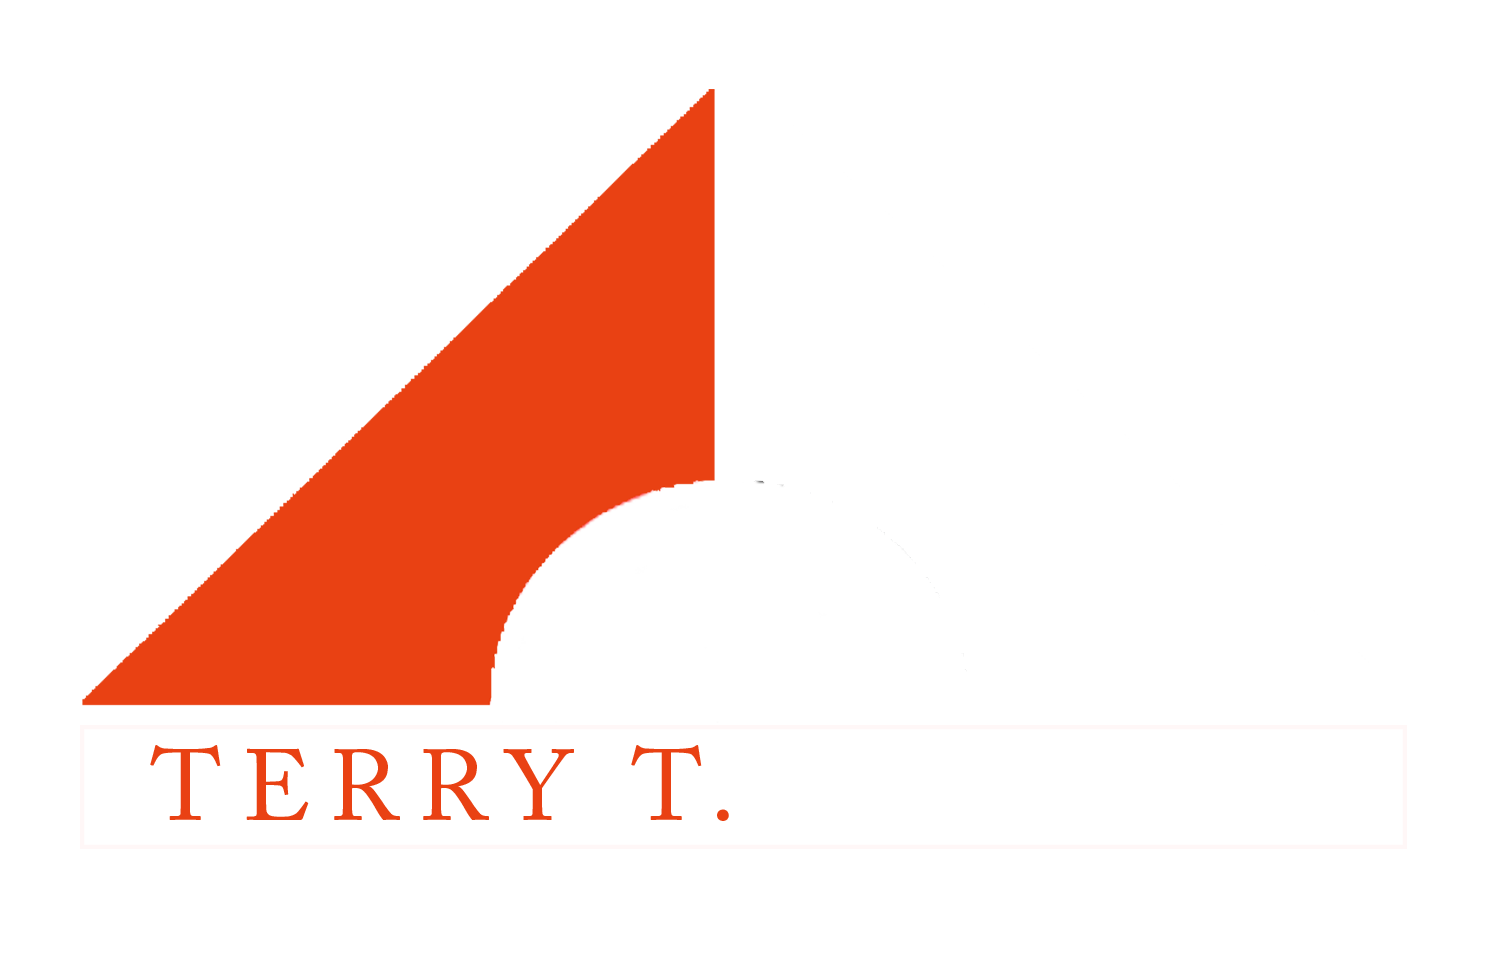 Terry T. Budget